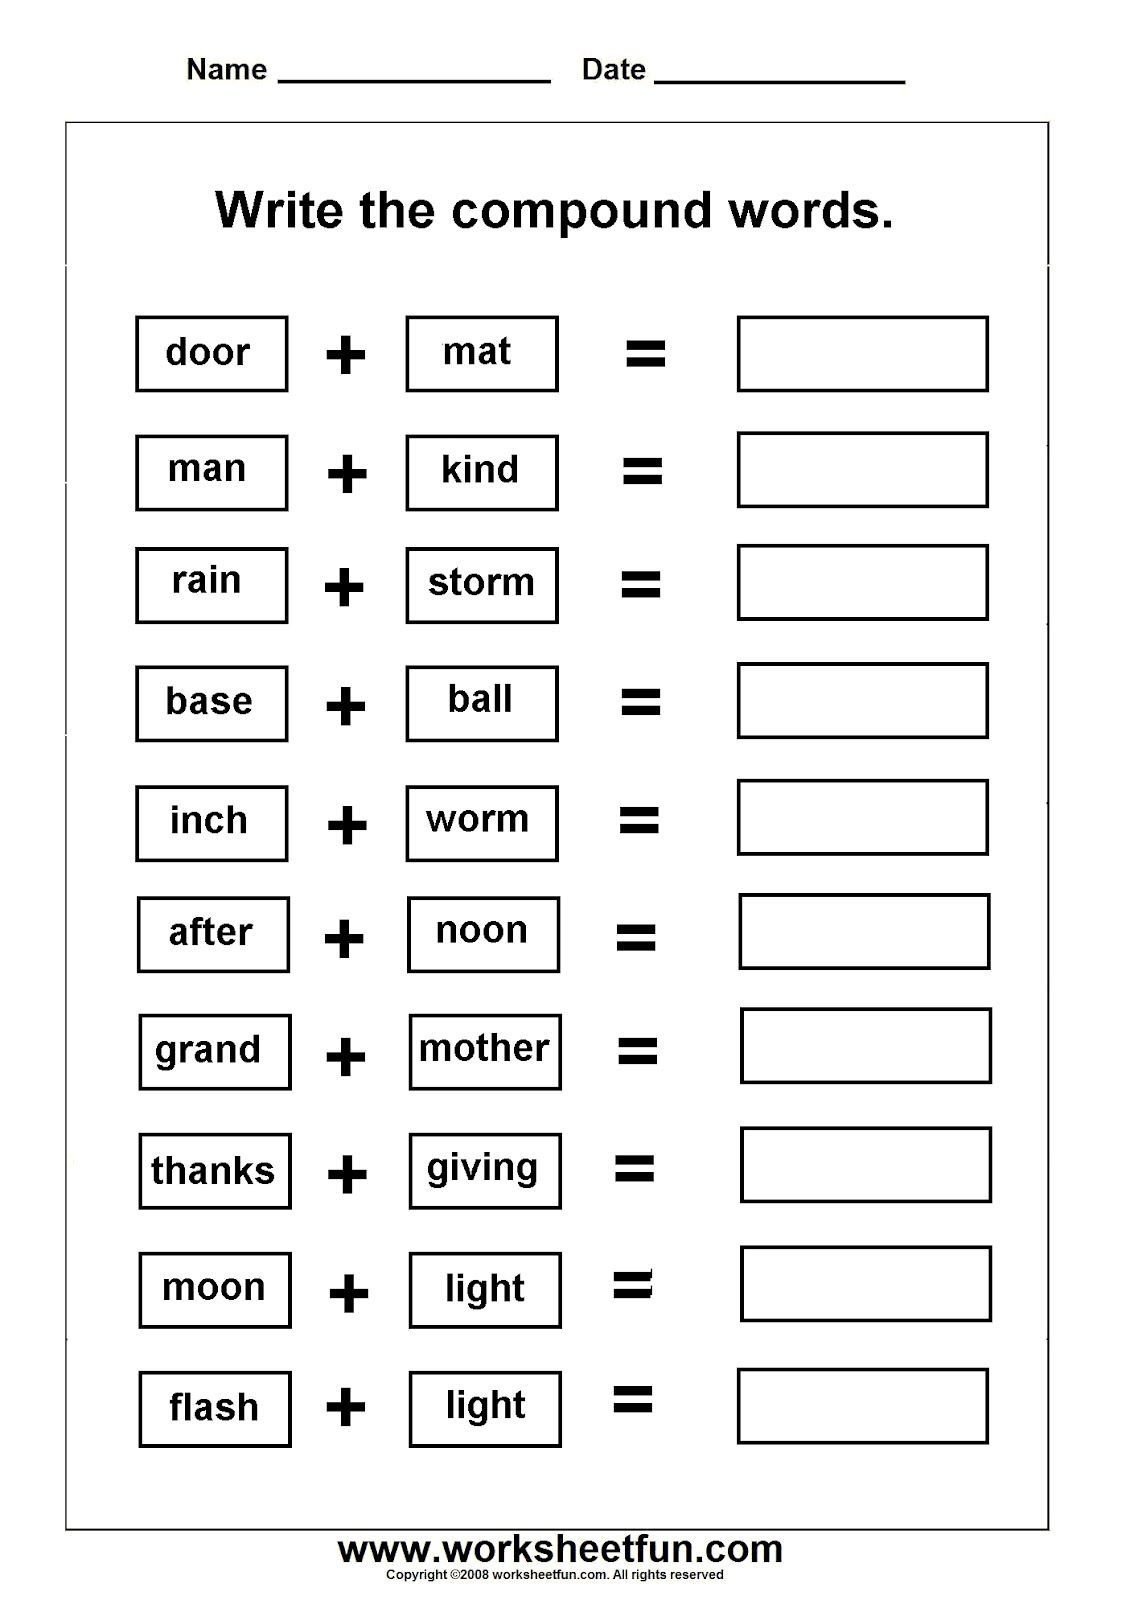 Compound Words Worksheets Grade 3 Worksheets Pound Words